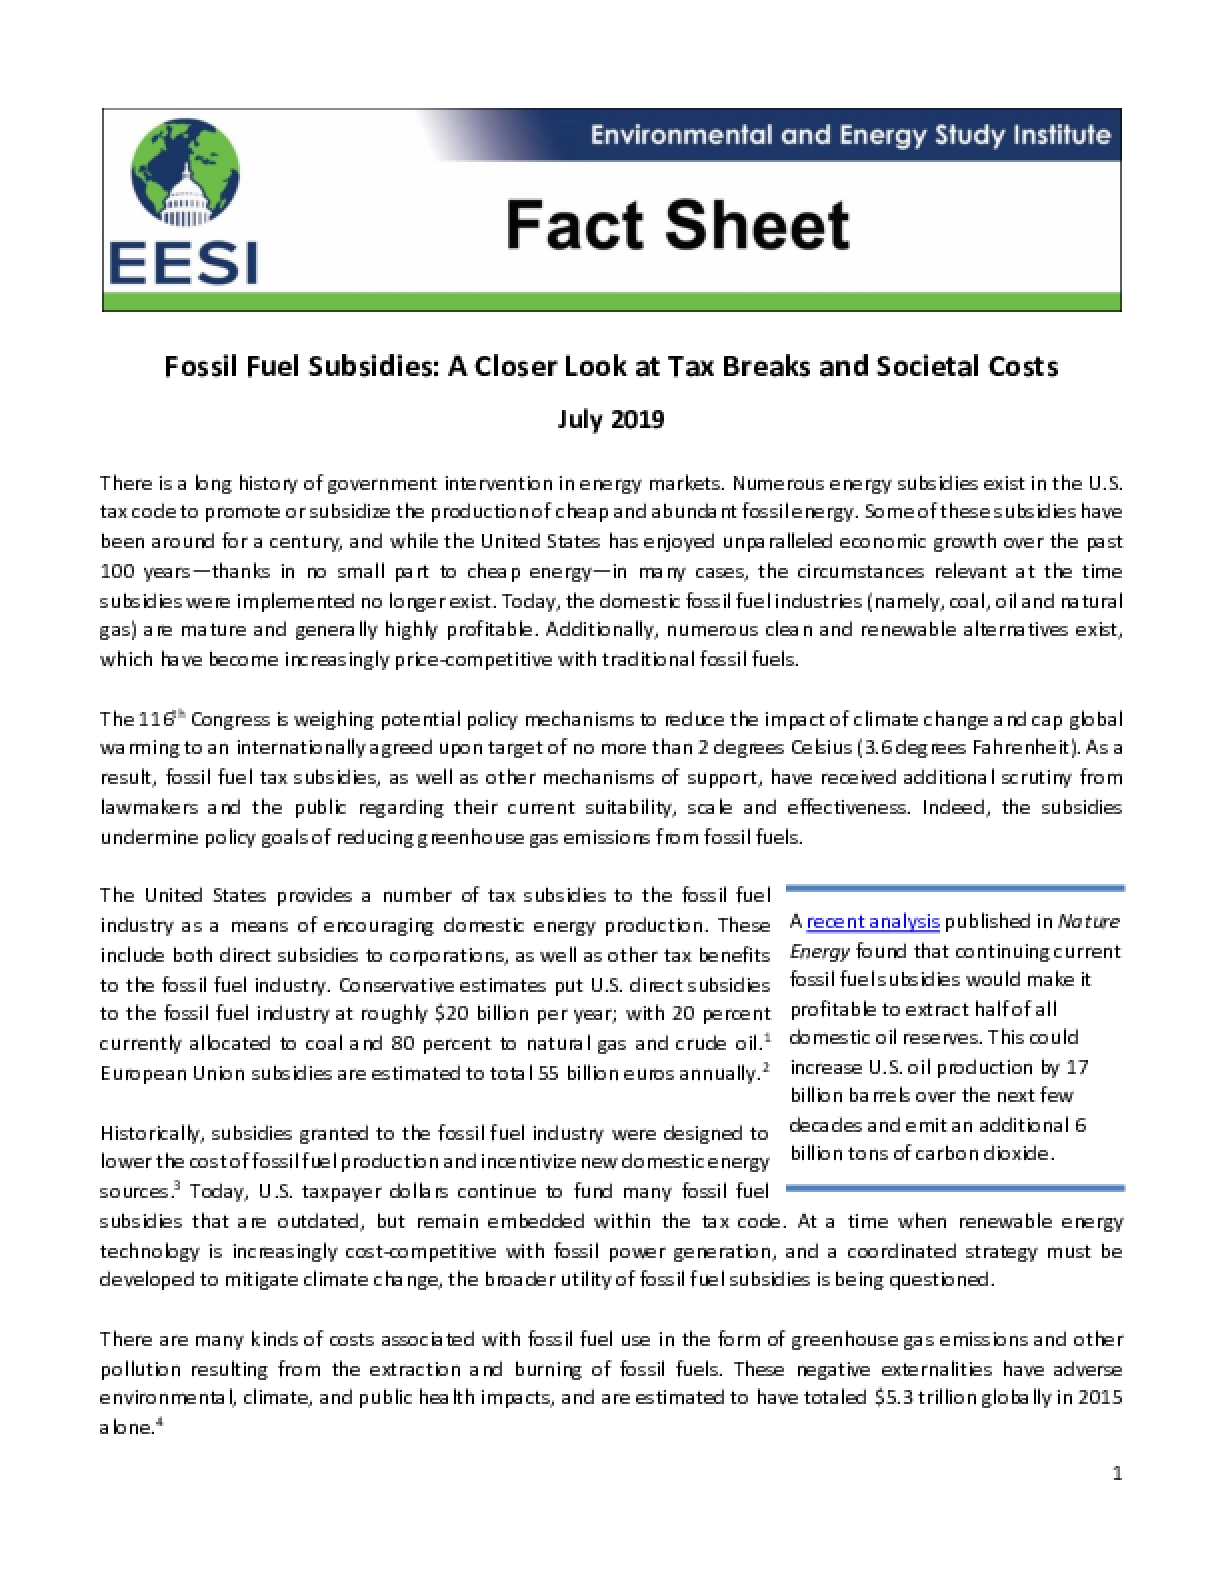 Fact Sheet: Fossil Fuel Subsidies: A Closer Look at Tax Breaks and Societal Costs